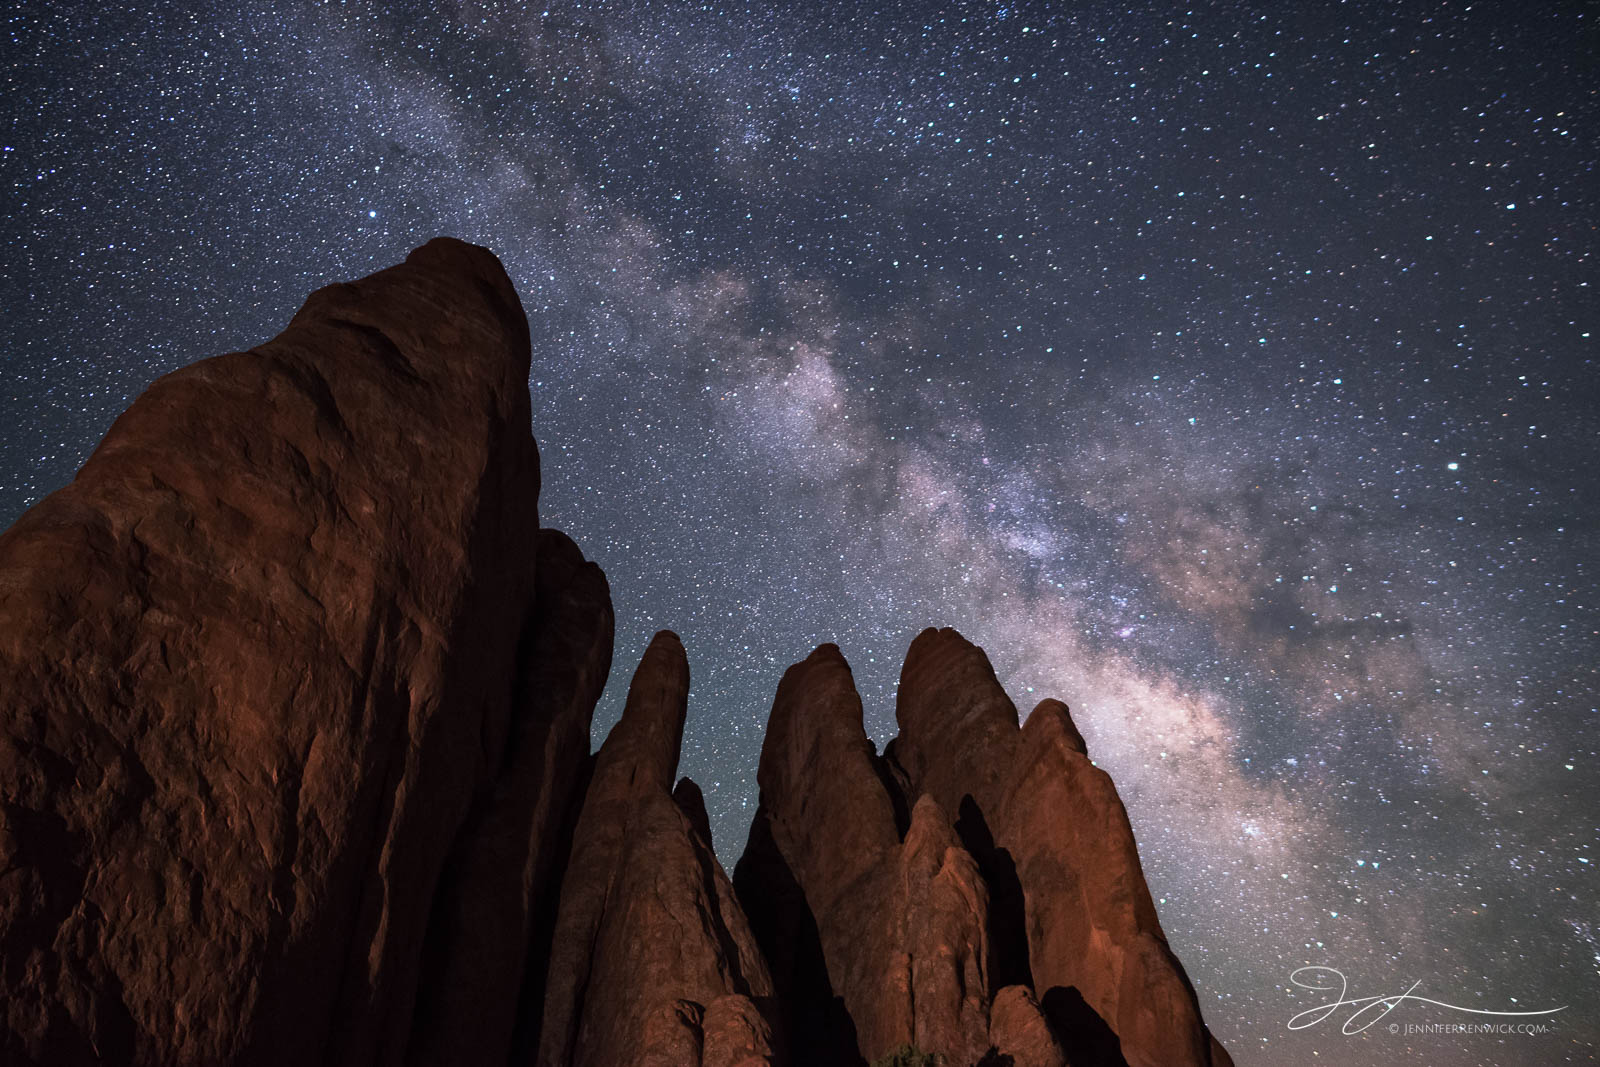 The Fins reach up to the night sky in Arches National Park.